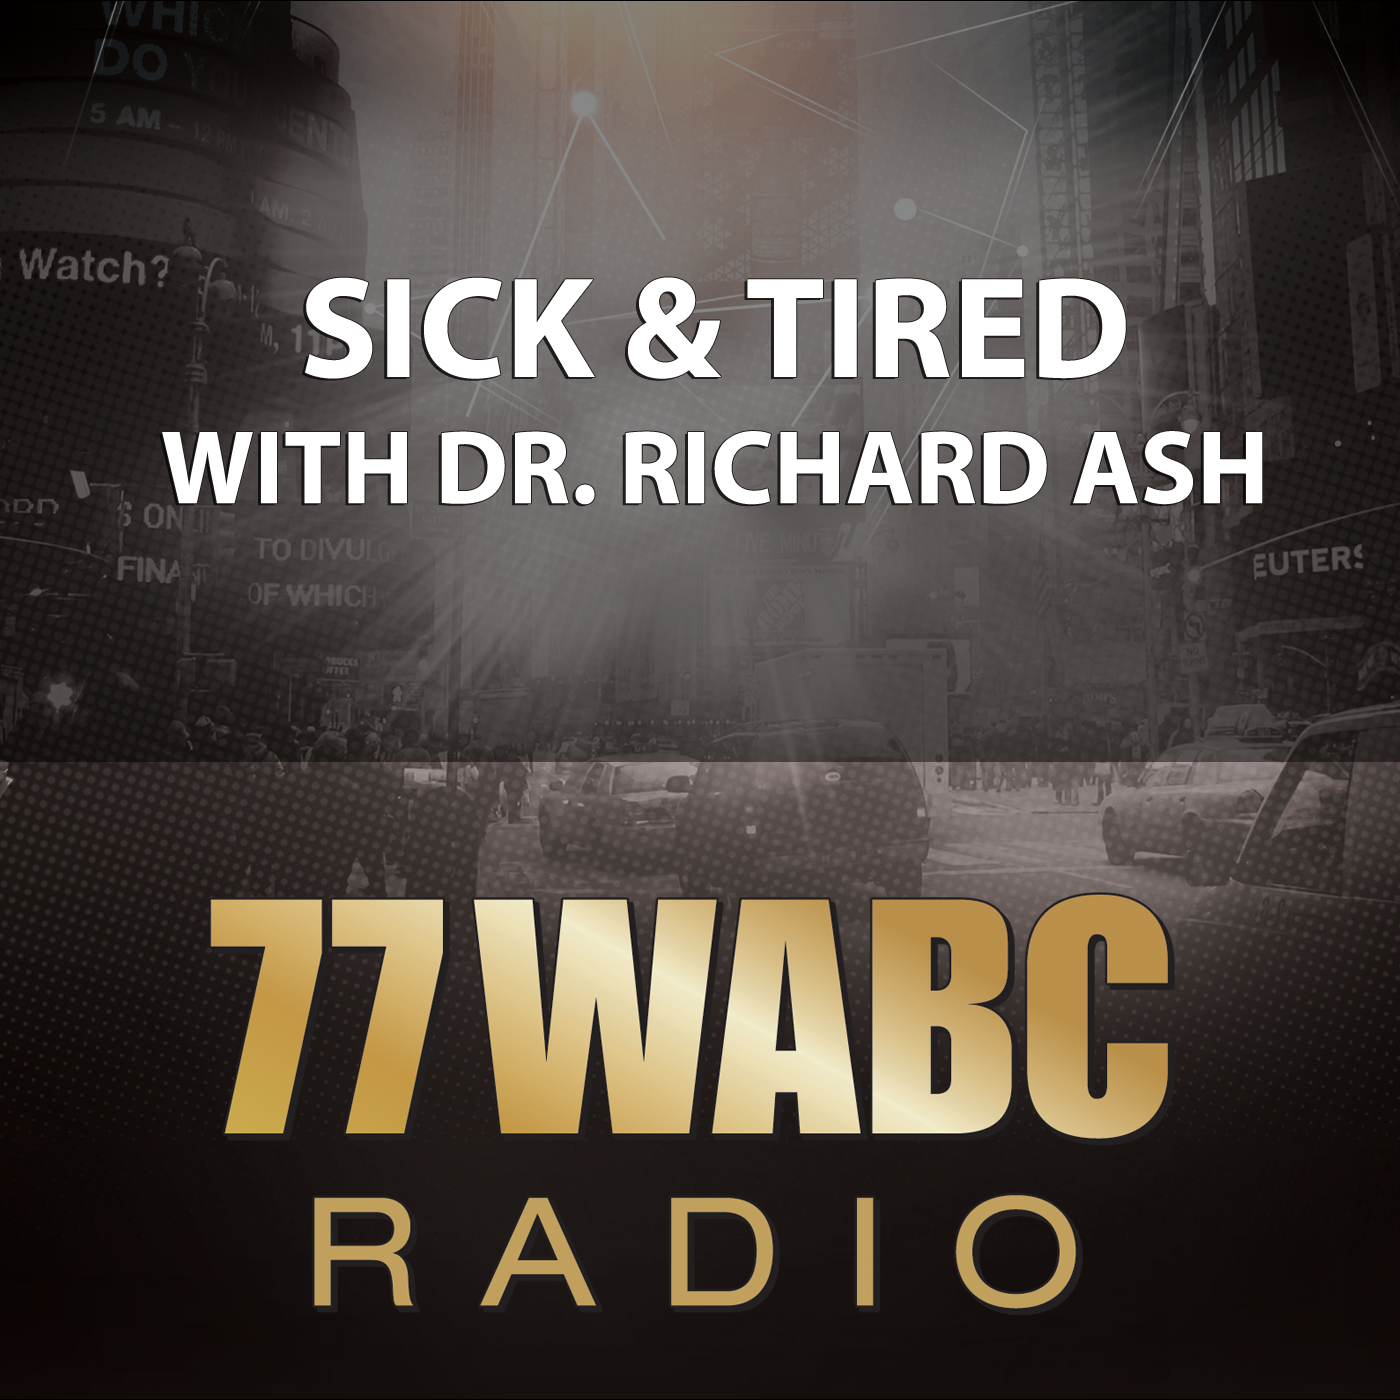 Sick & Tired with Dr. Richard Ash, MD on 77 WABC Radio